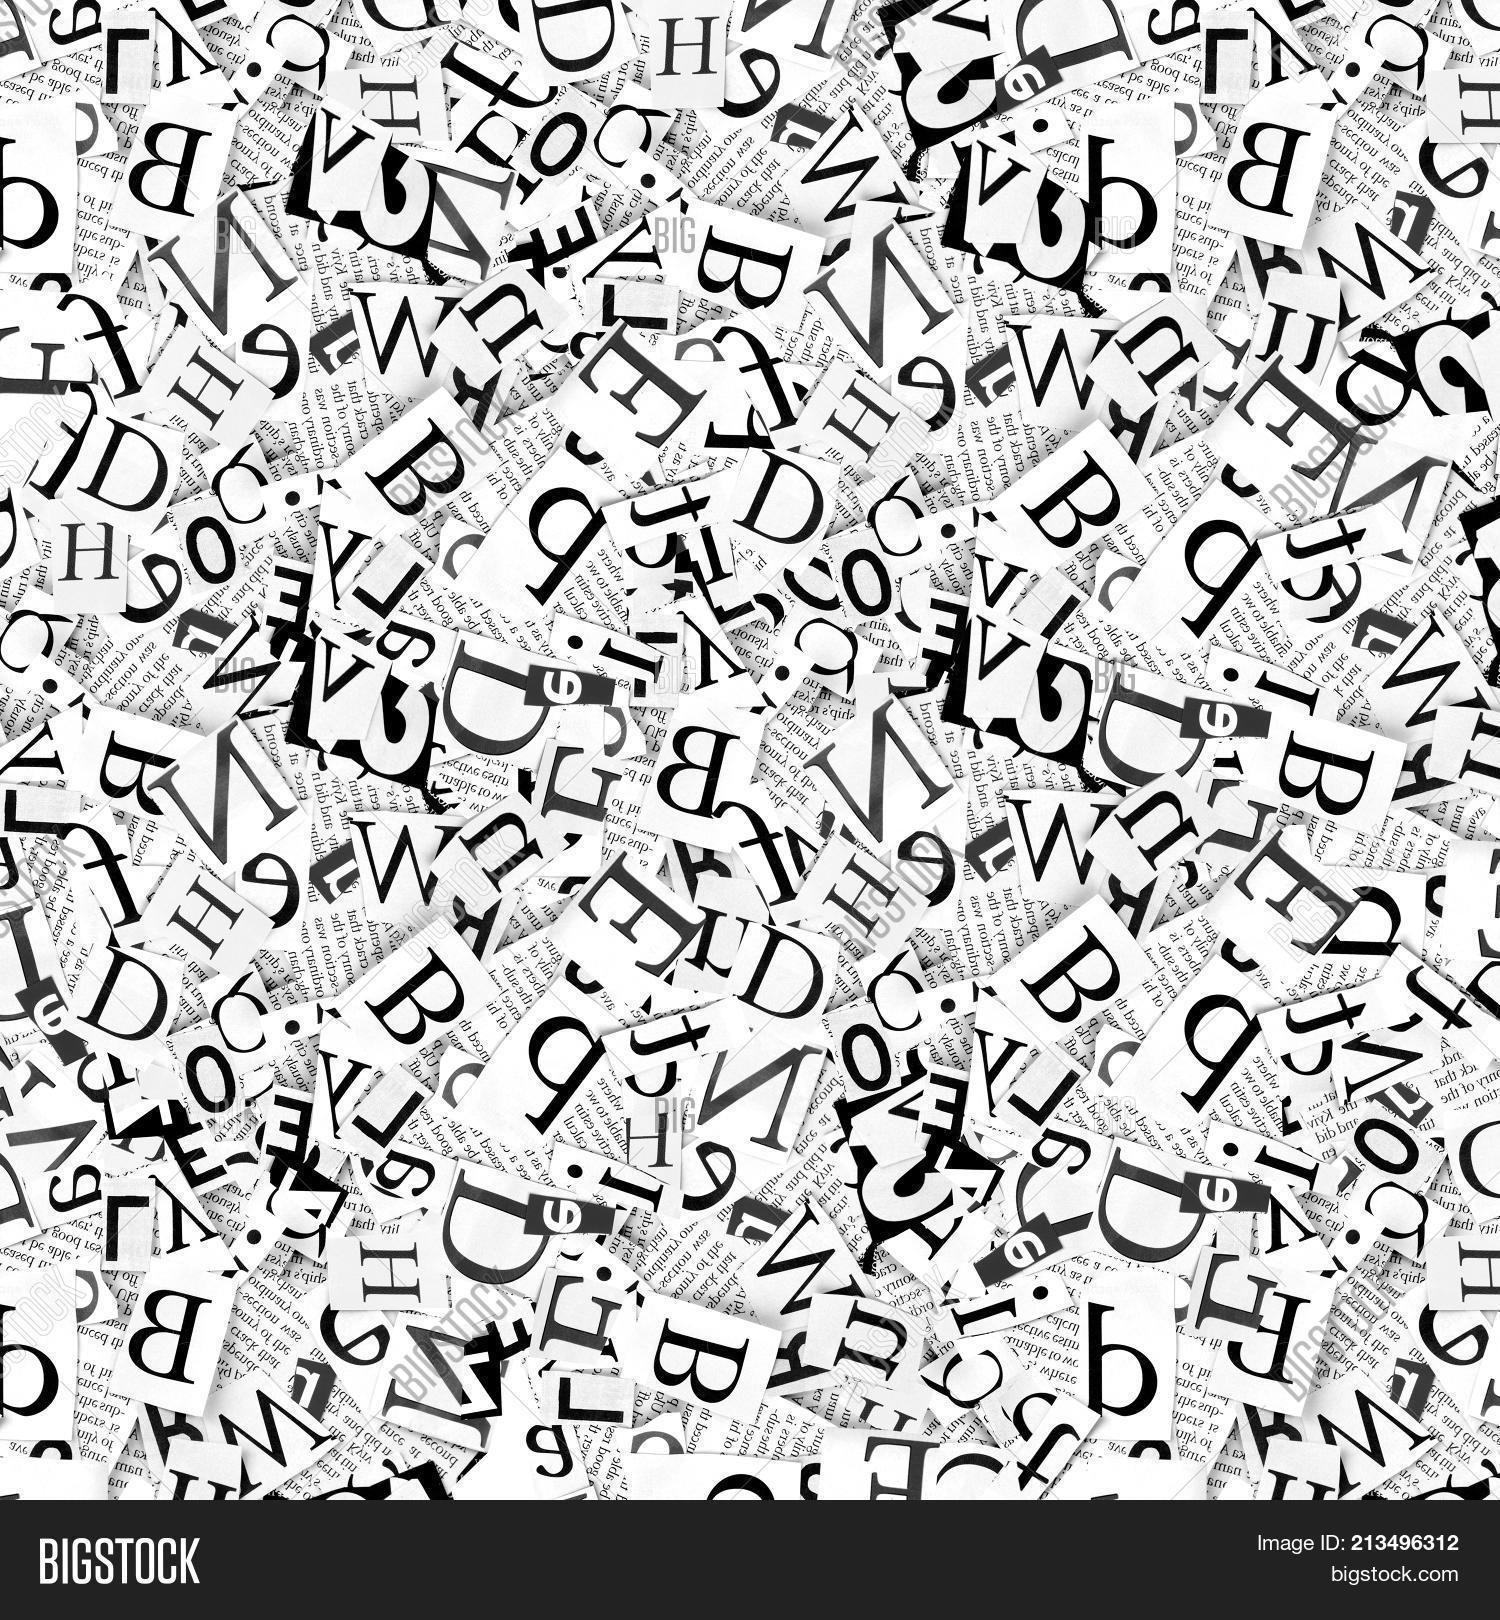 Words Letters Cut Image Photo Free Trial Bigstock